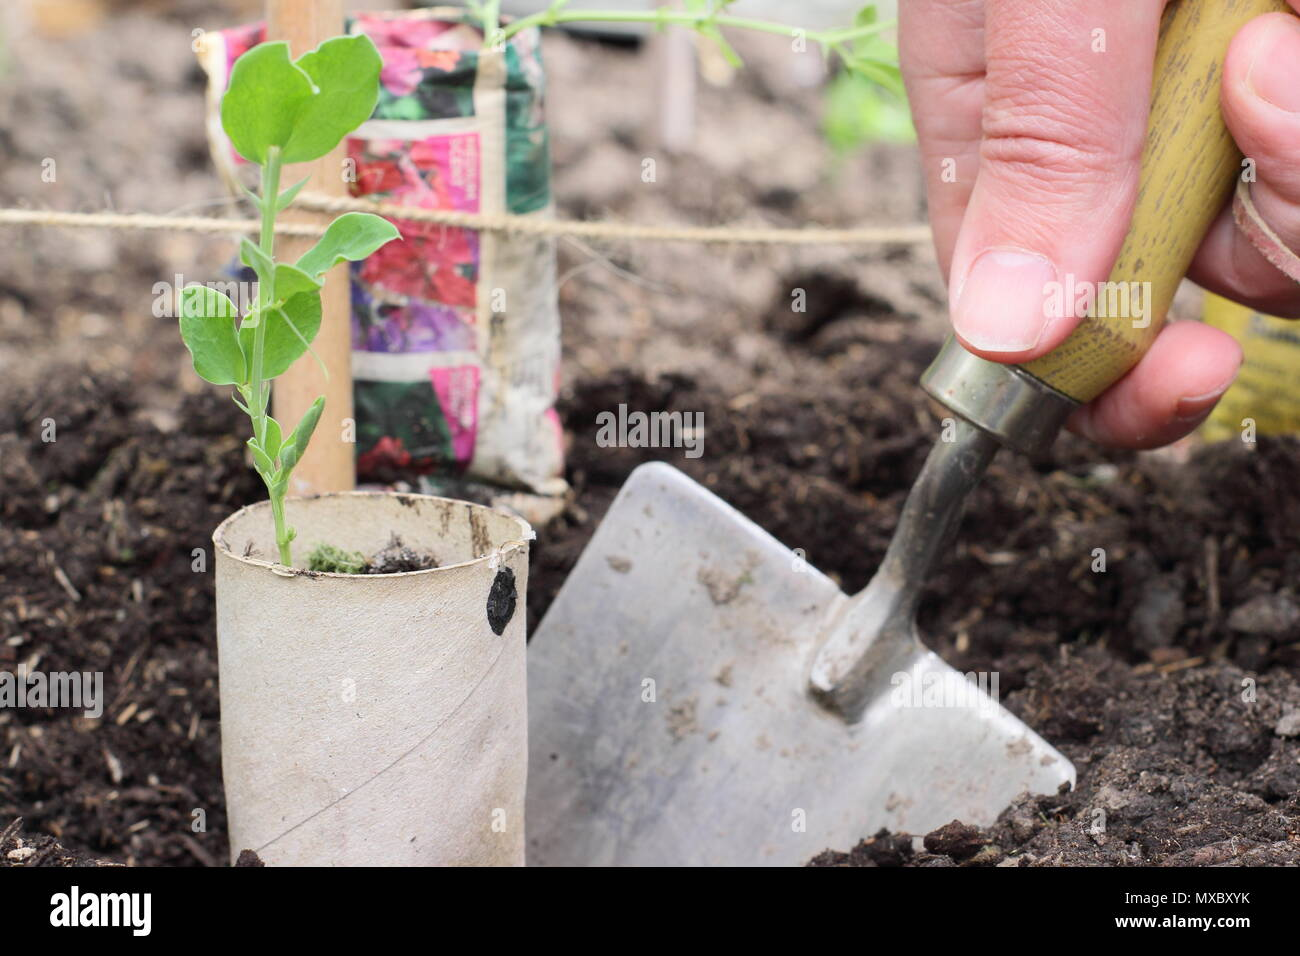 Lathyrus odoratus. Planting young sweet pea plants in recycled paper pots at the base of cane wigwam plant supports, spring, UK - Stock Image